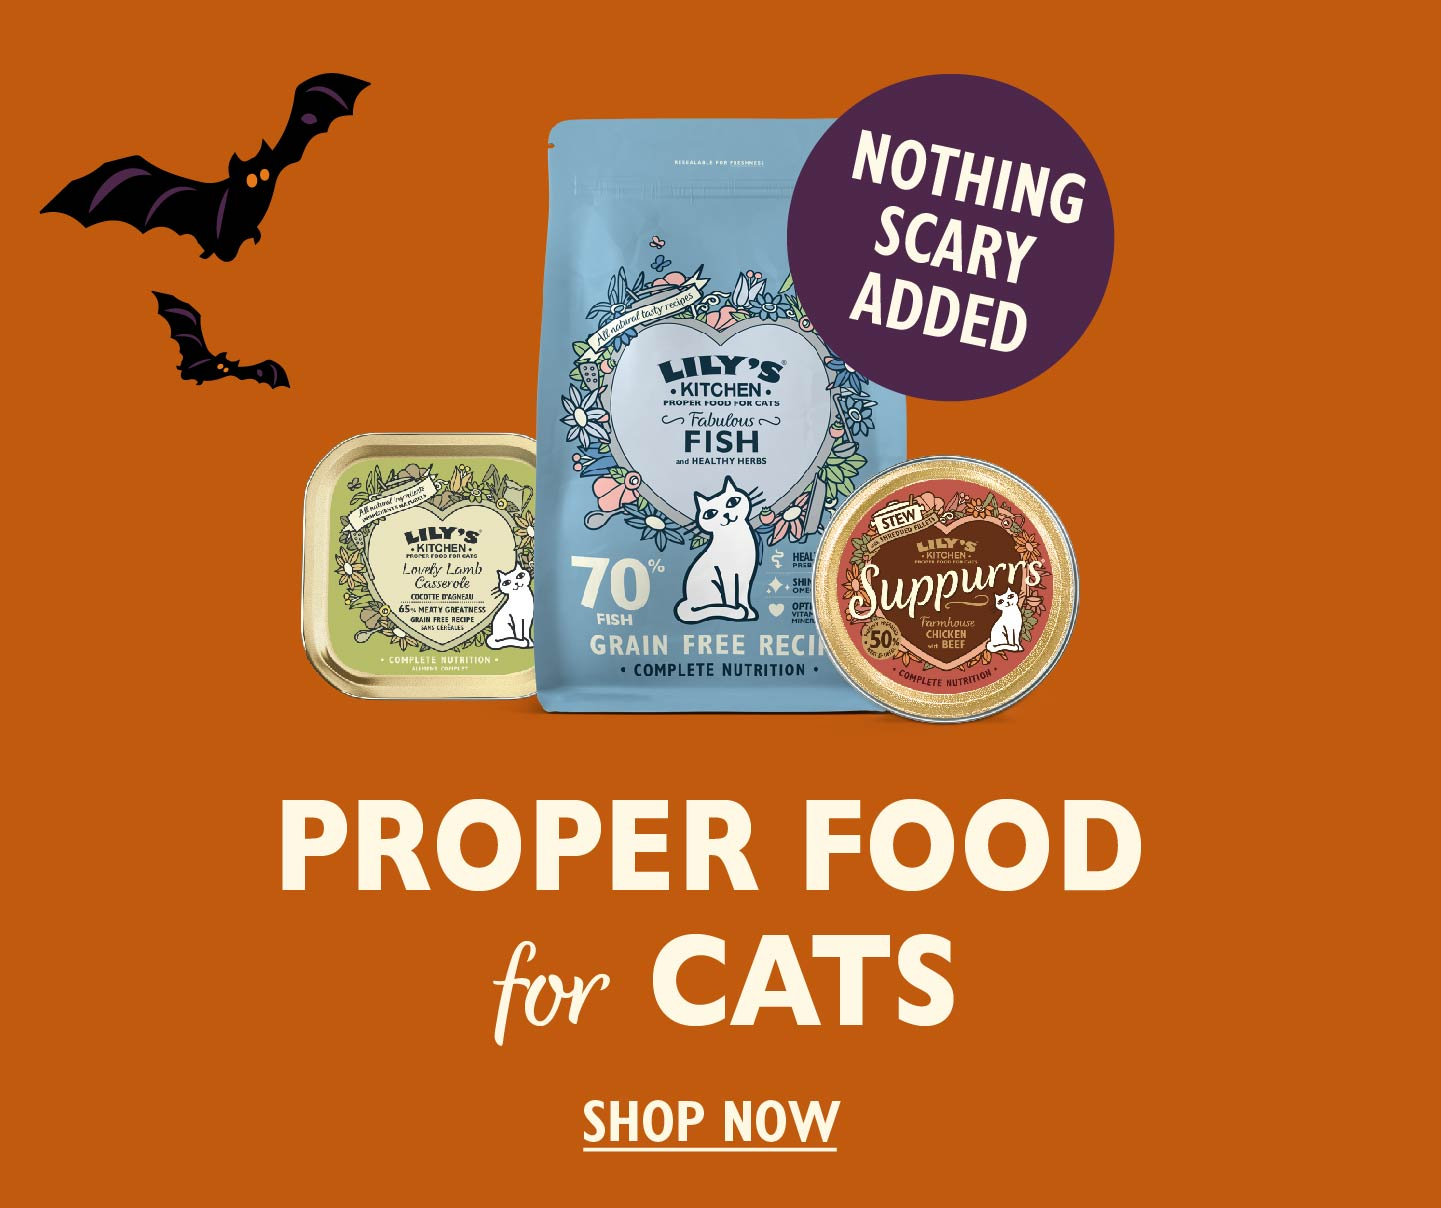 Proper Food for Cats